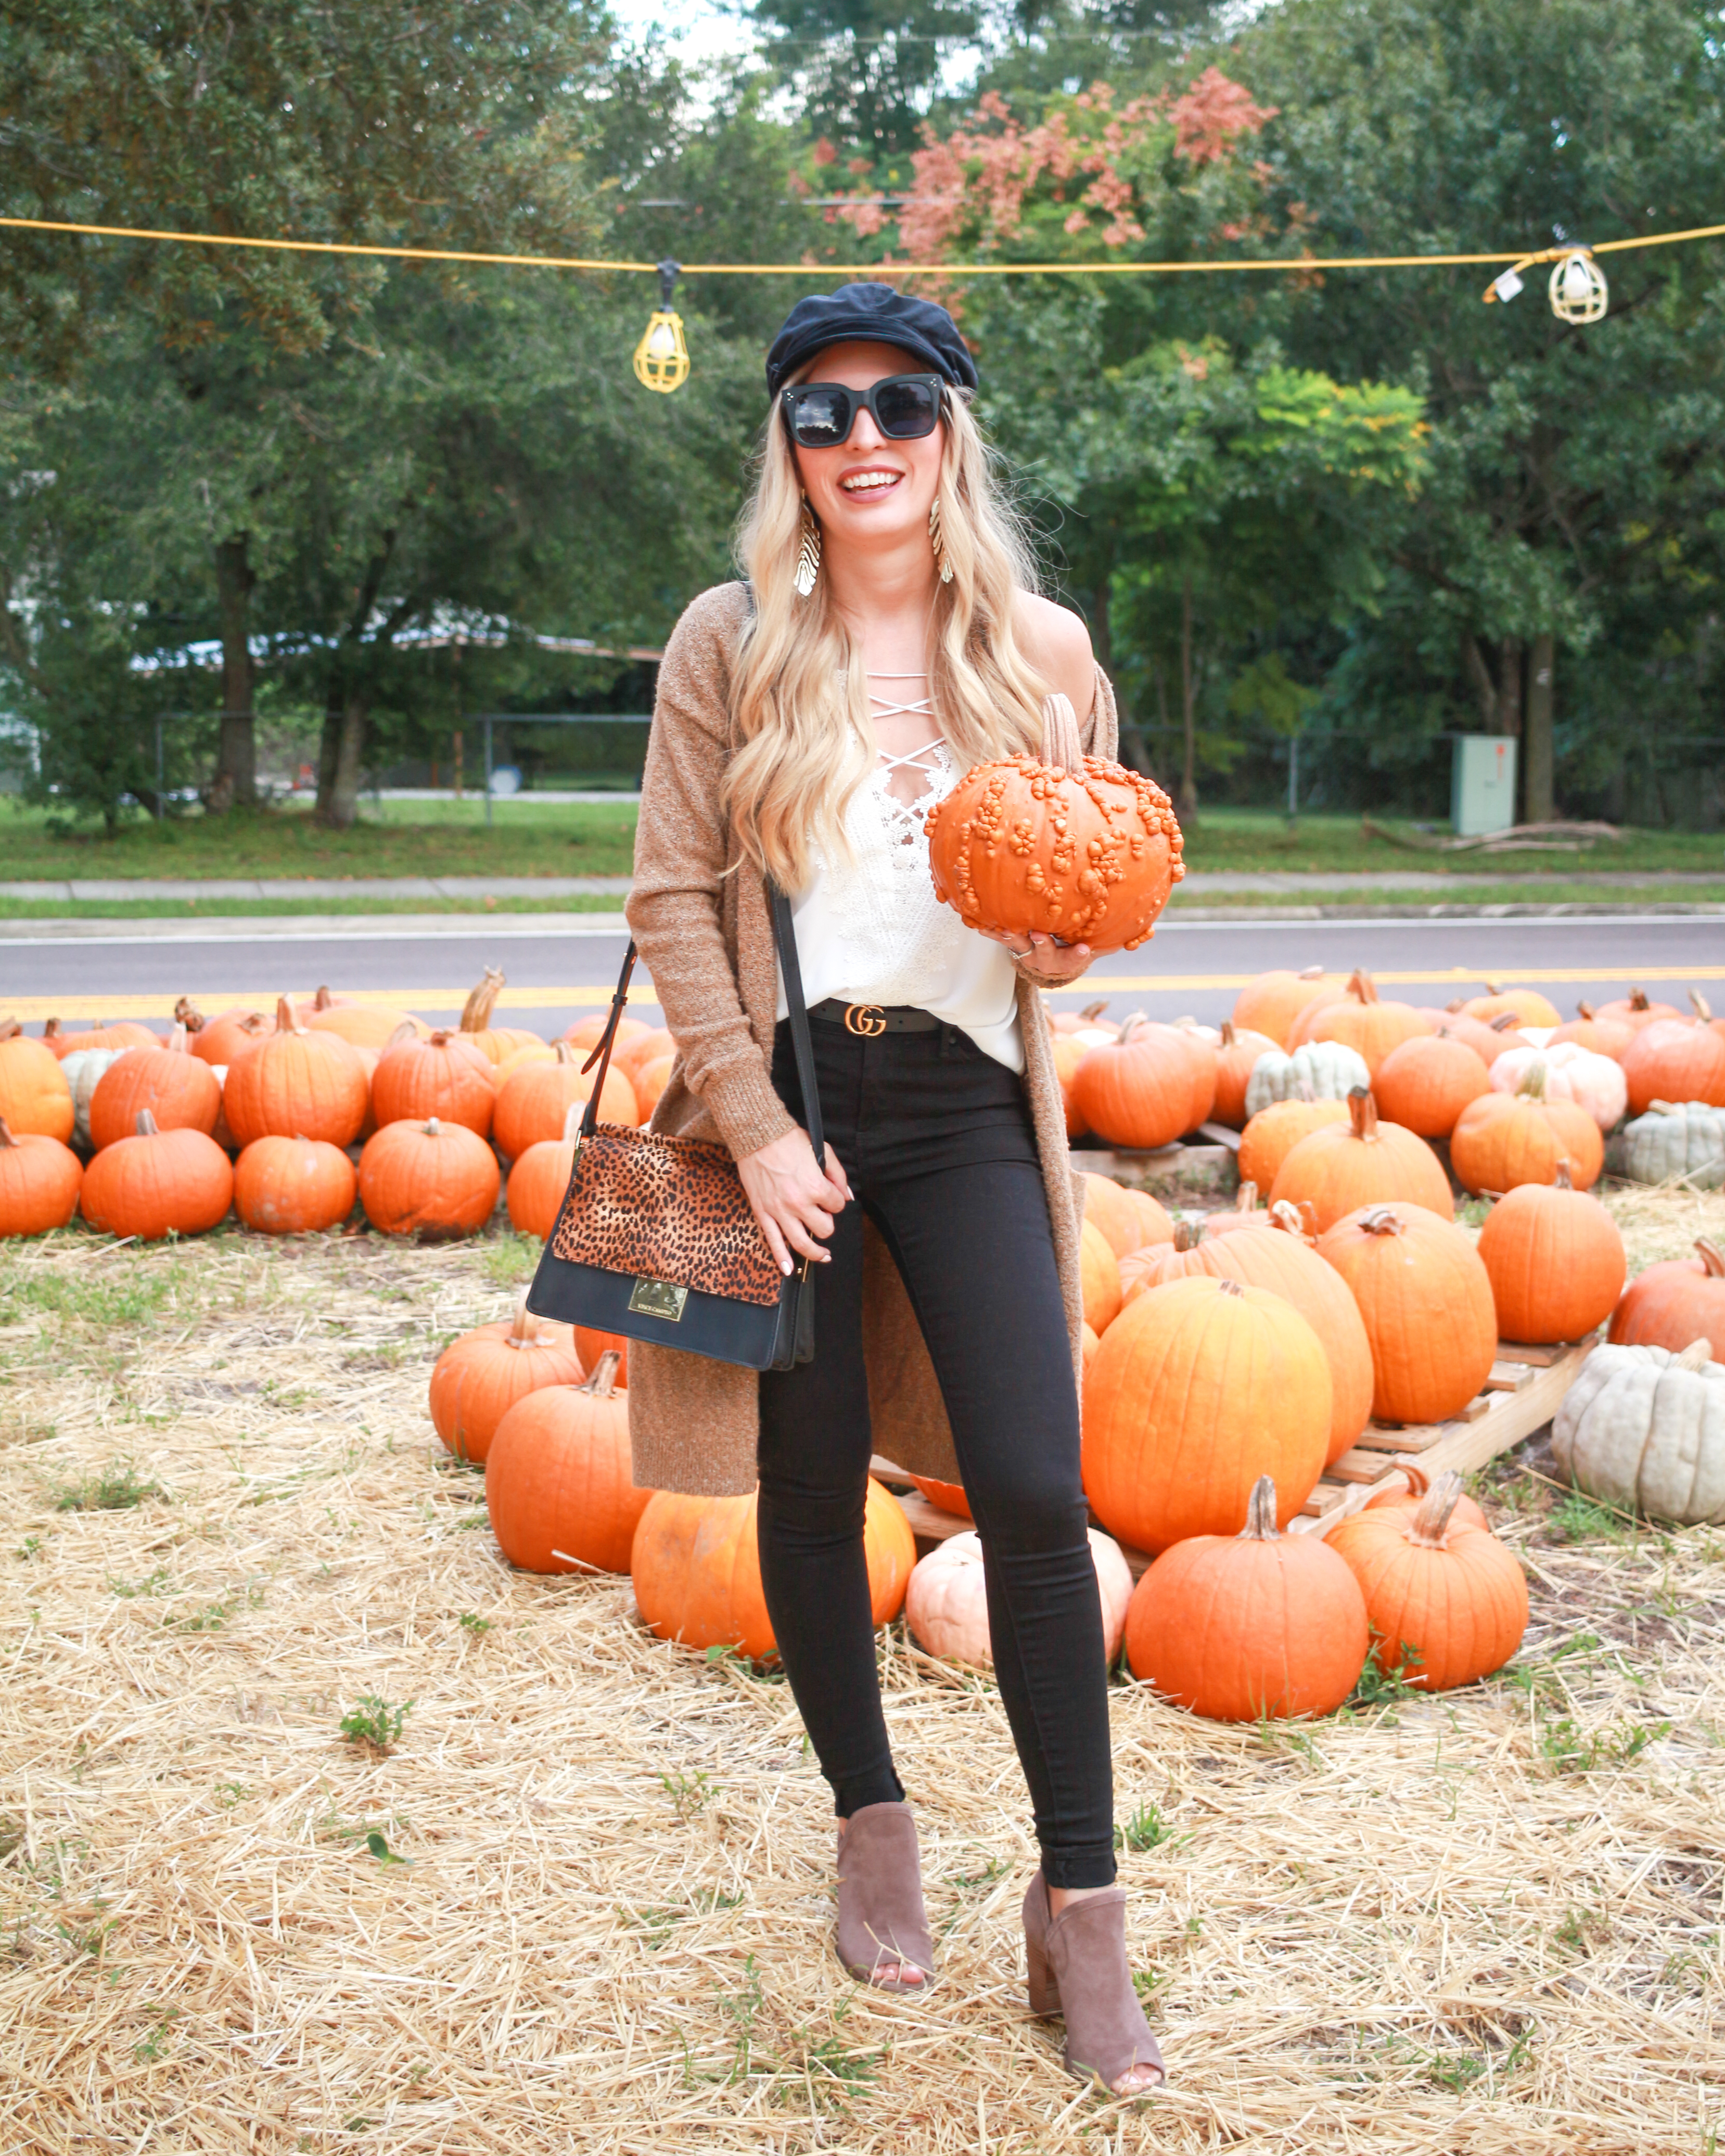 FALL STYLE PUMPKIN PATCH 13 THANKSGIVING OUTFIT IDEAS